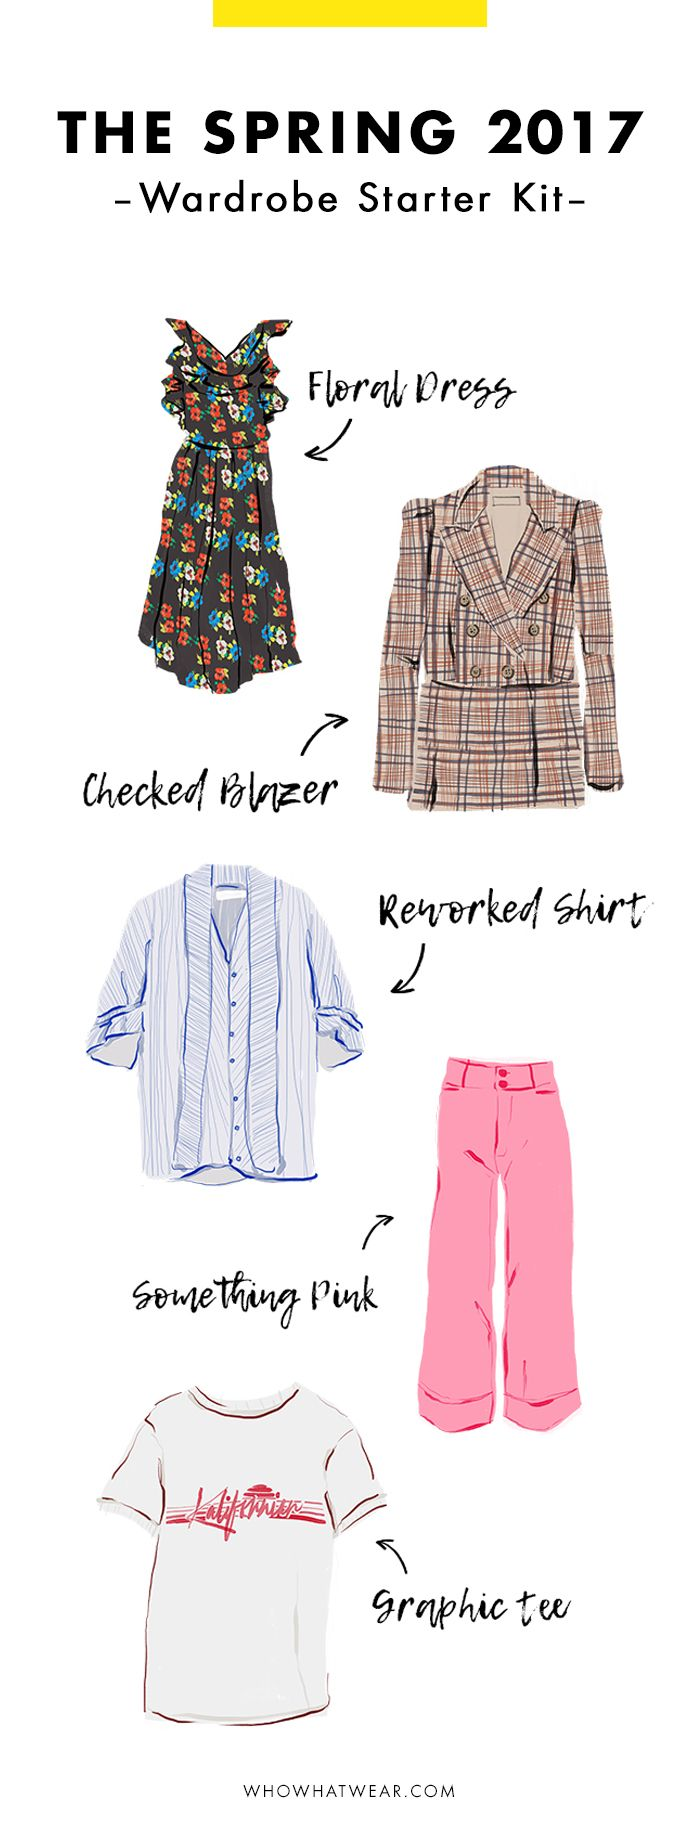 Want to refresh your spring wardrobe? These are the essentials every fashion girl needs.